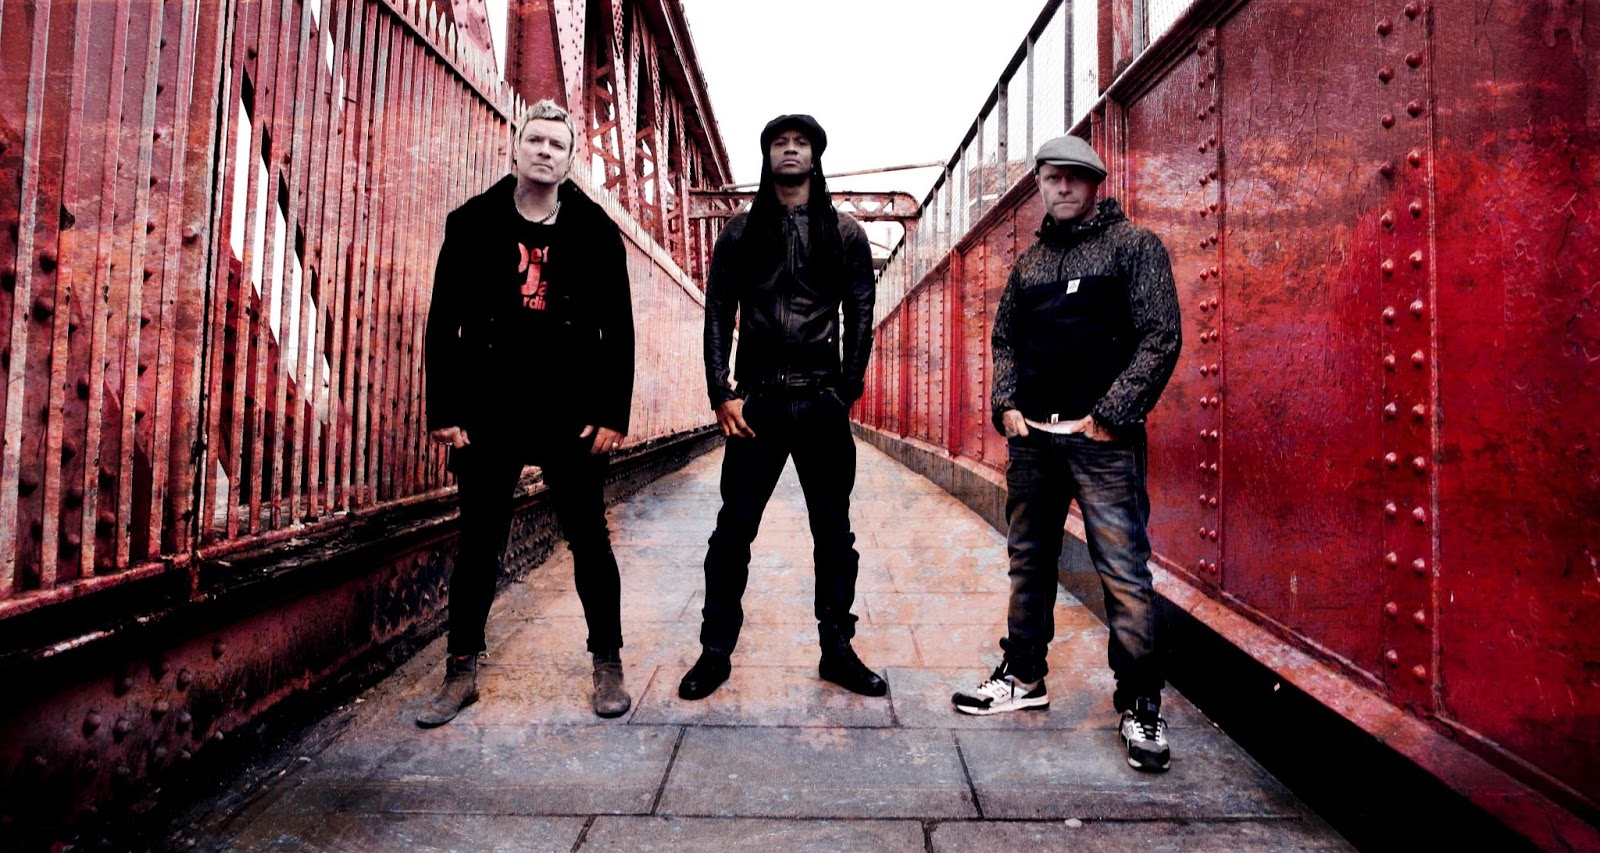 The Prodigy - The Day Is My Enemy - Song of the Day - Atomlabor Blog Musiktipp